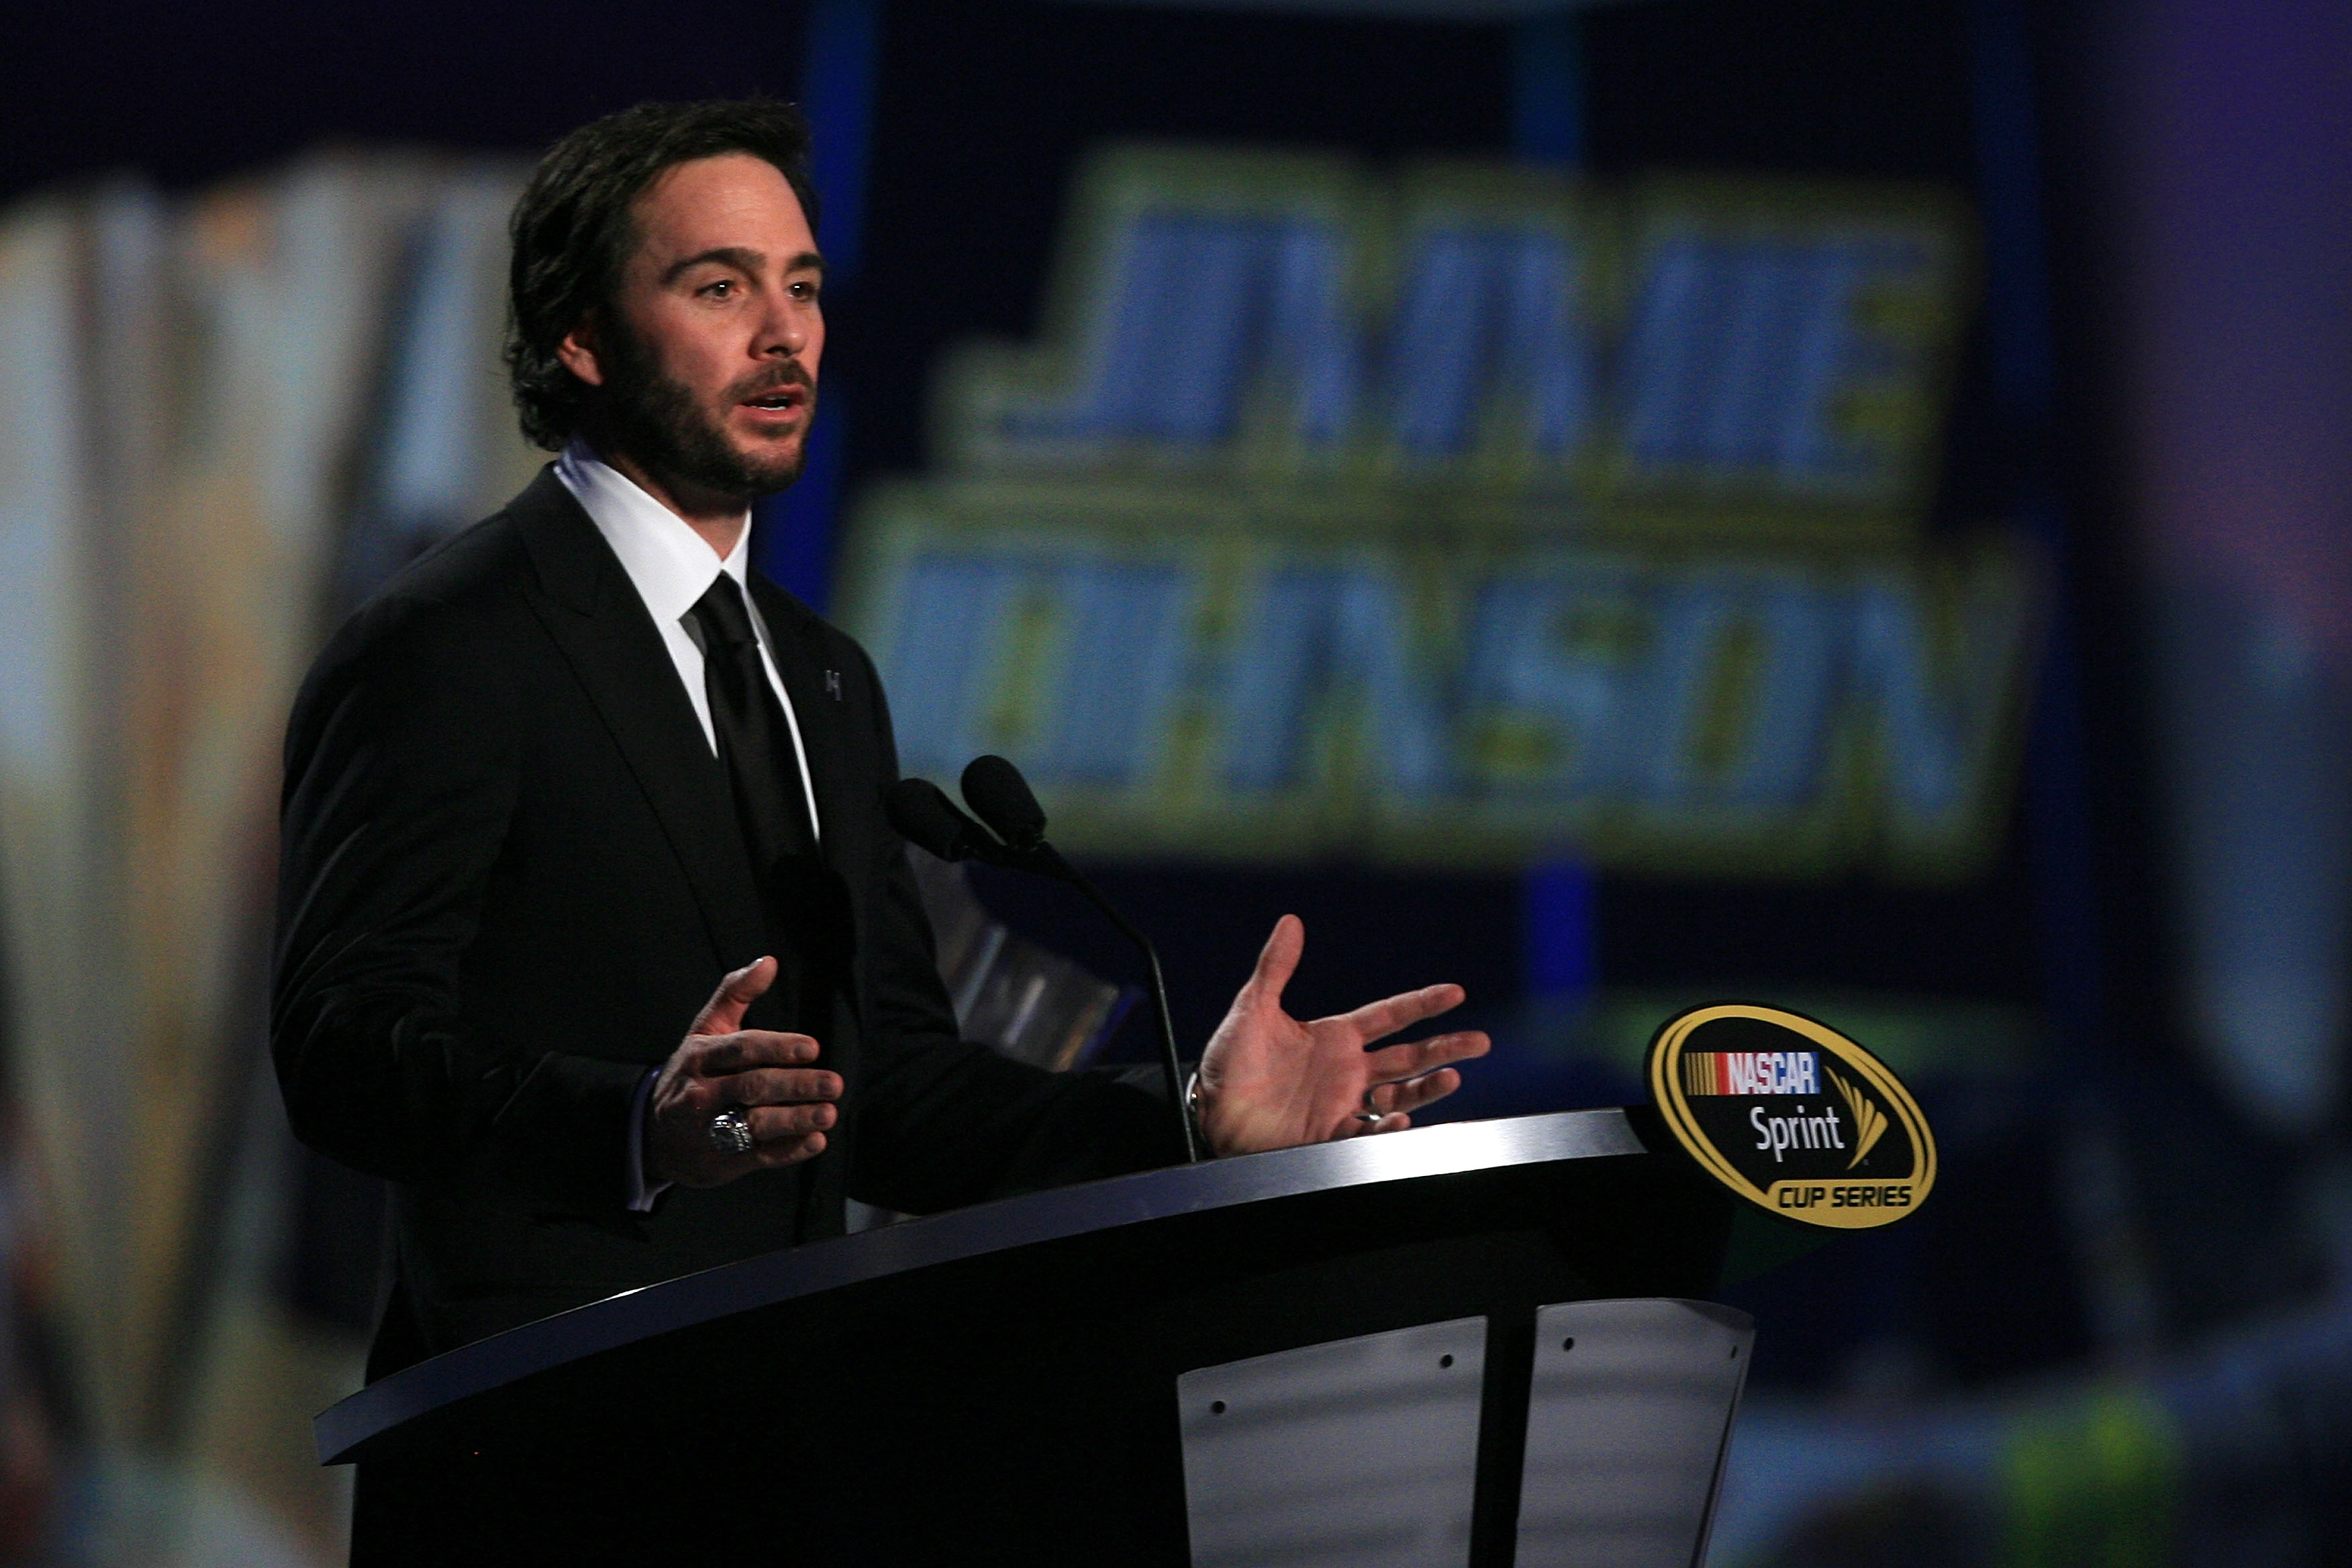 LAS VEGAS, NV - DECEMBER 03:  Five-time champion Jimmie Johnson speaks during the NASCAR Sprint Cup Series awards banquet at the Wynn Las Vegas Hotel on December 3, 2010 in Las Vegas, Nevada.  (Photo by Chris Trotman/Getty Images)